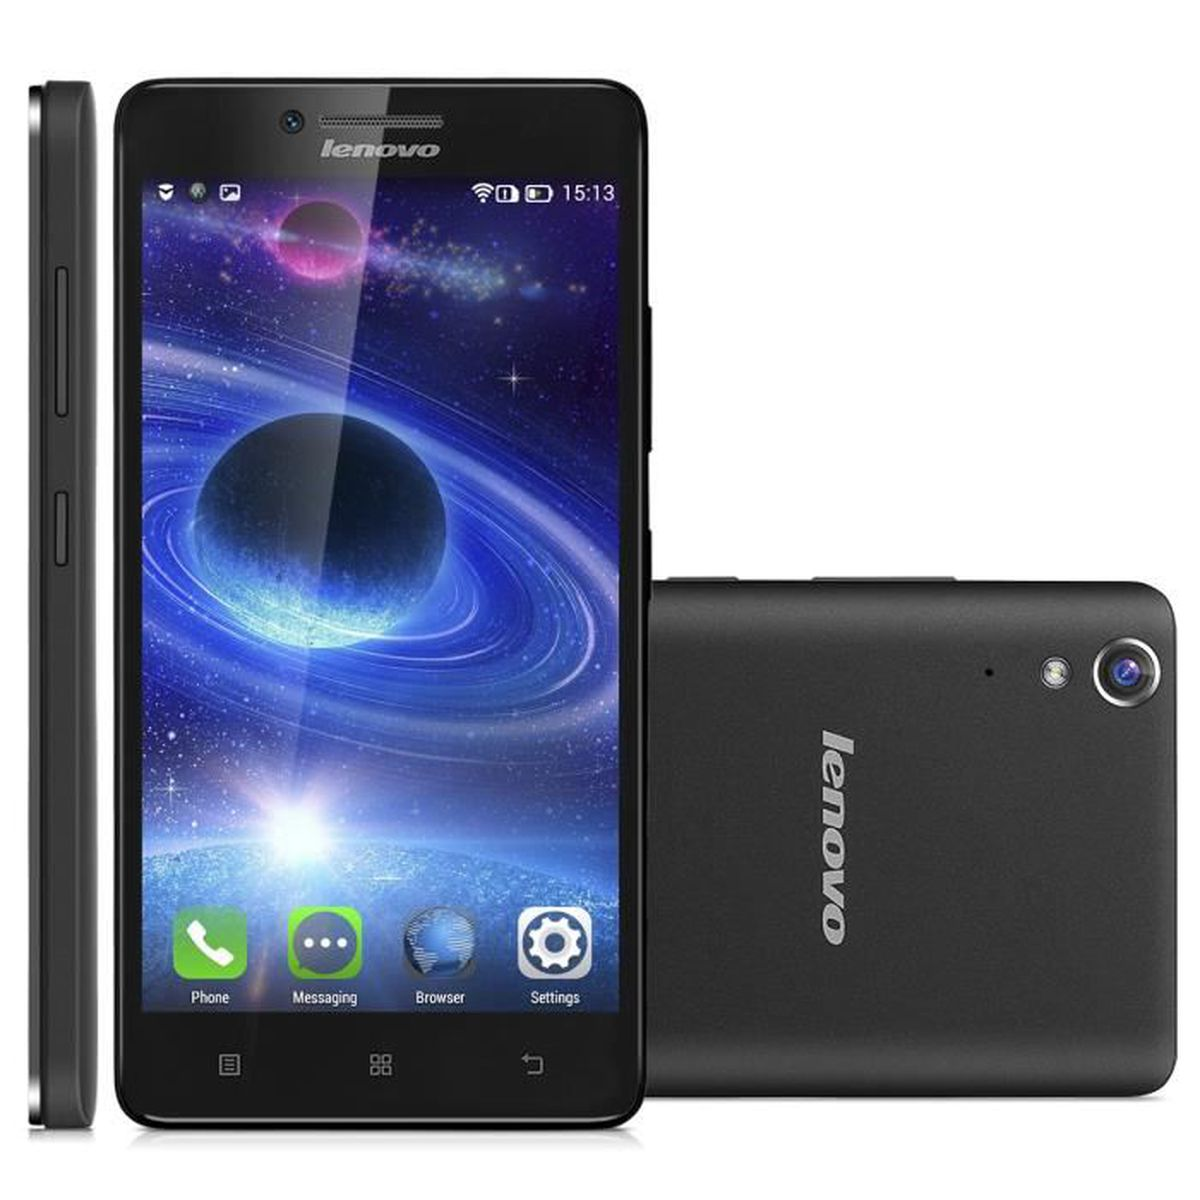 lenovo k30 w 5 0 39 39 4g smartphone d bloqu noir dual sim 2300mah android 4 4 ips hd snapdragon. Black Bedroom Furniture Sets. Home Design Ideas